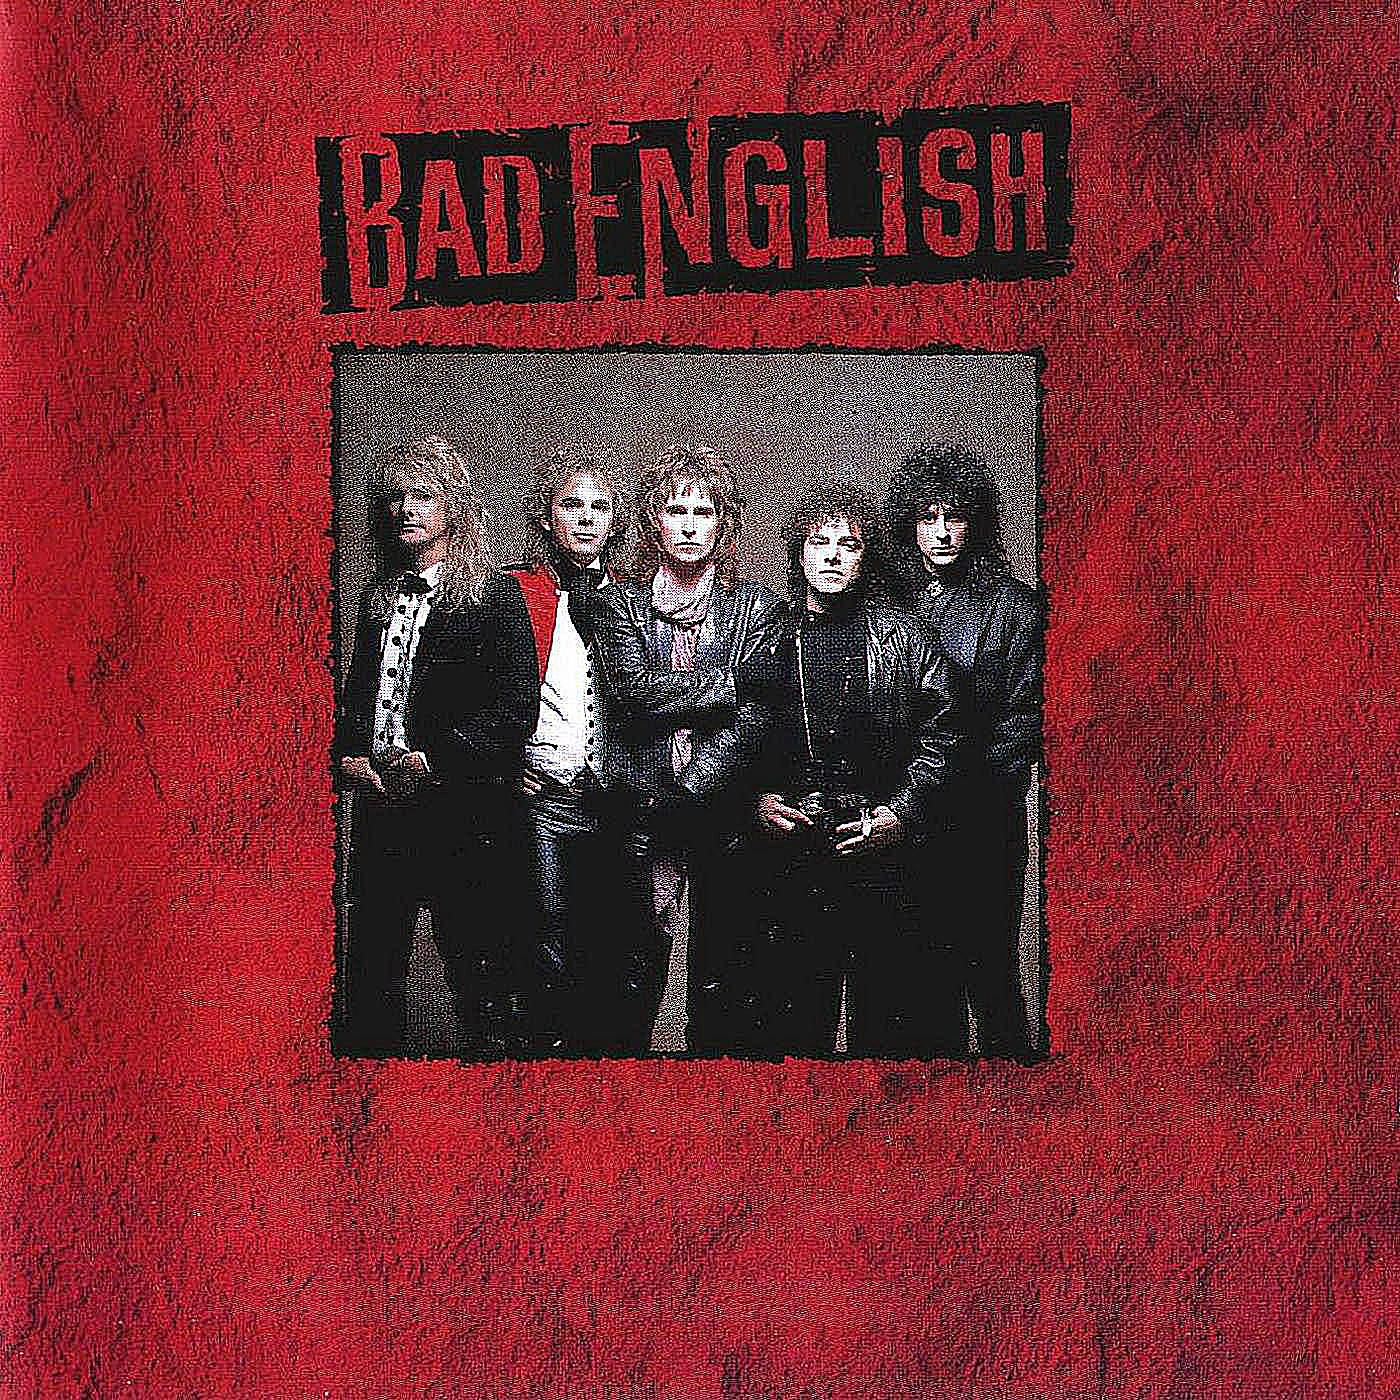 Bad English's self-tiled debut album cover from 1989